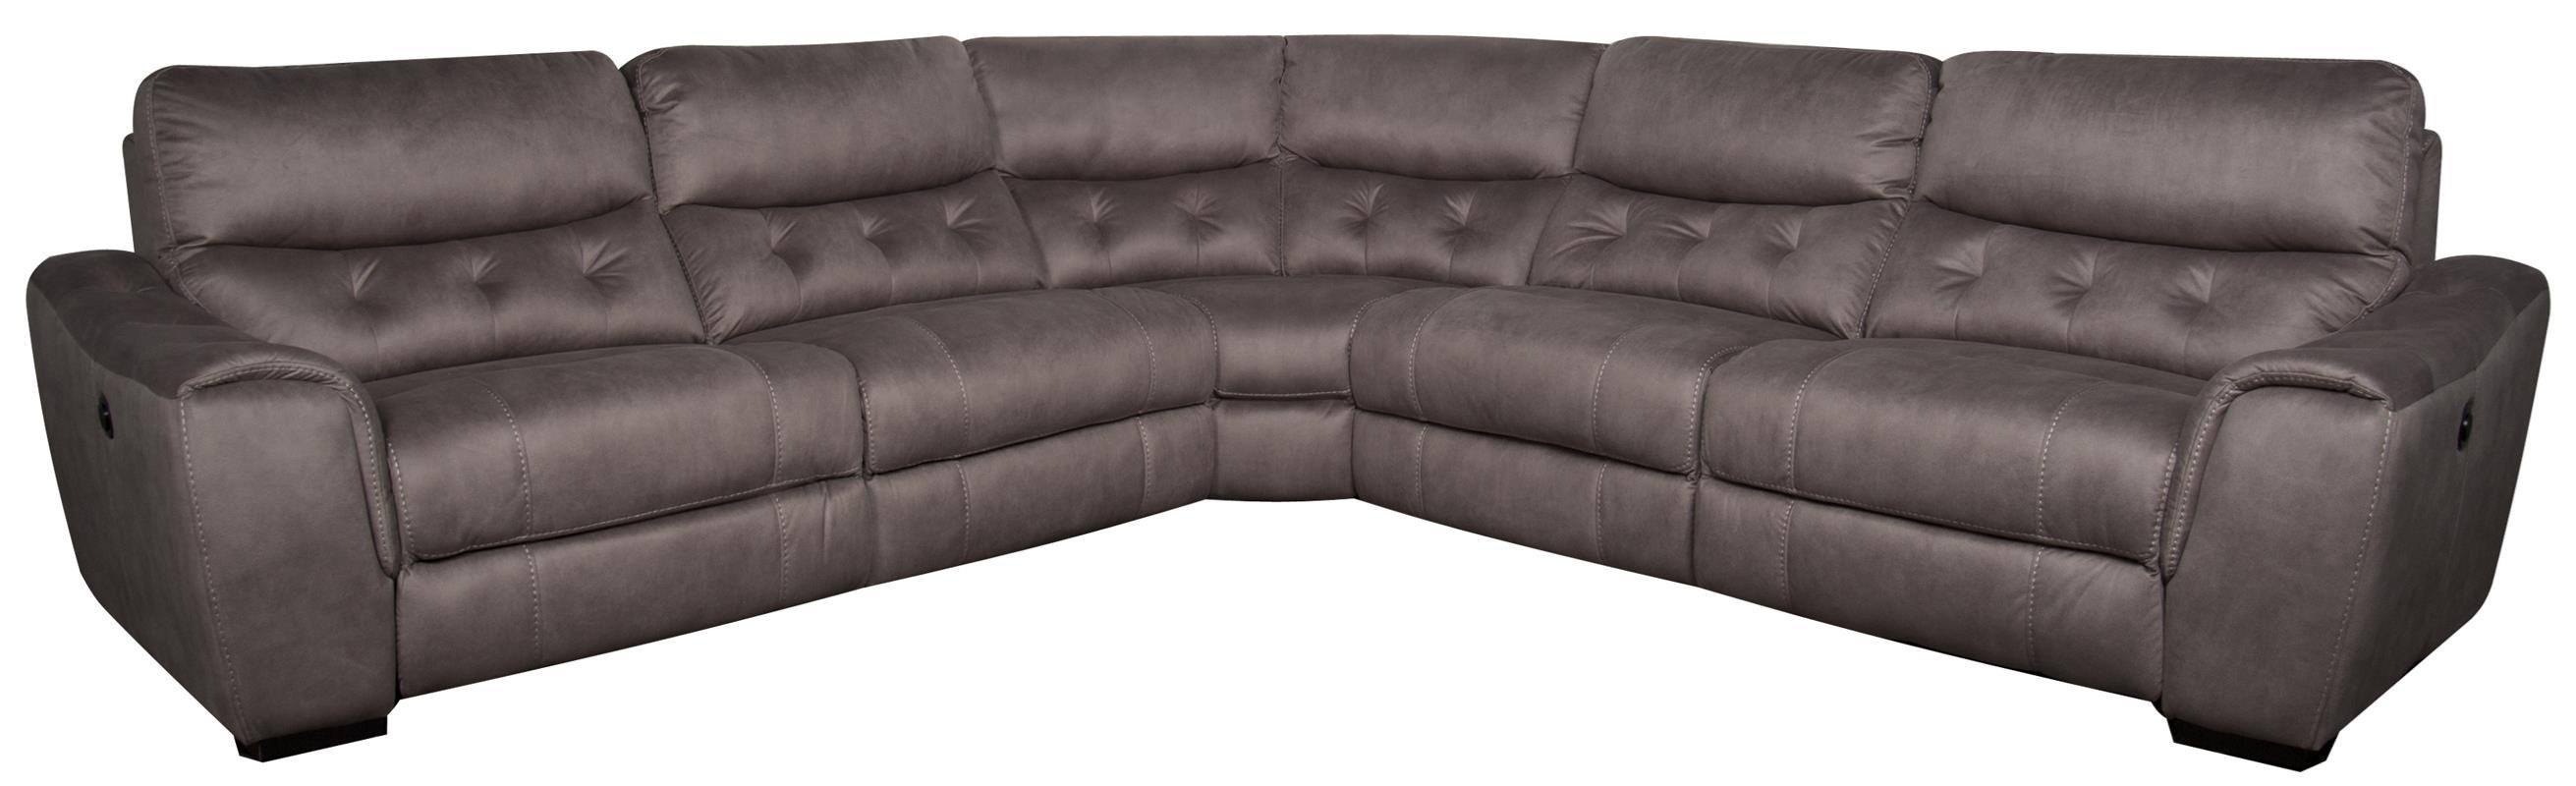 Morris Home Furnishings Reese  Reese 5-Piece Power Sectional - Item Number: 134123903